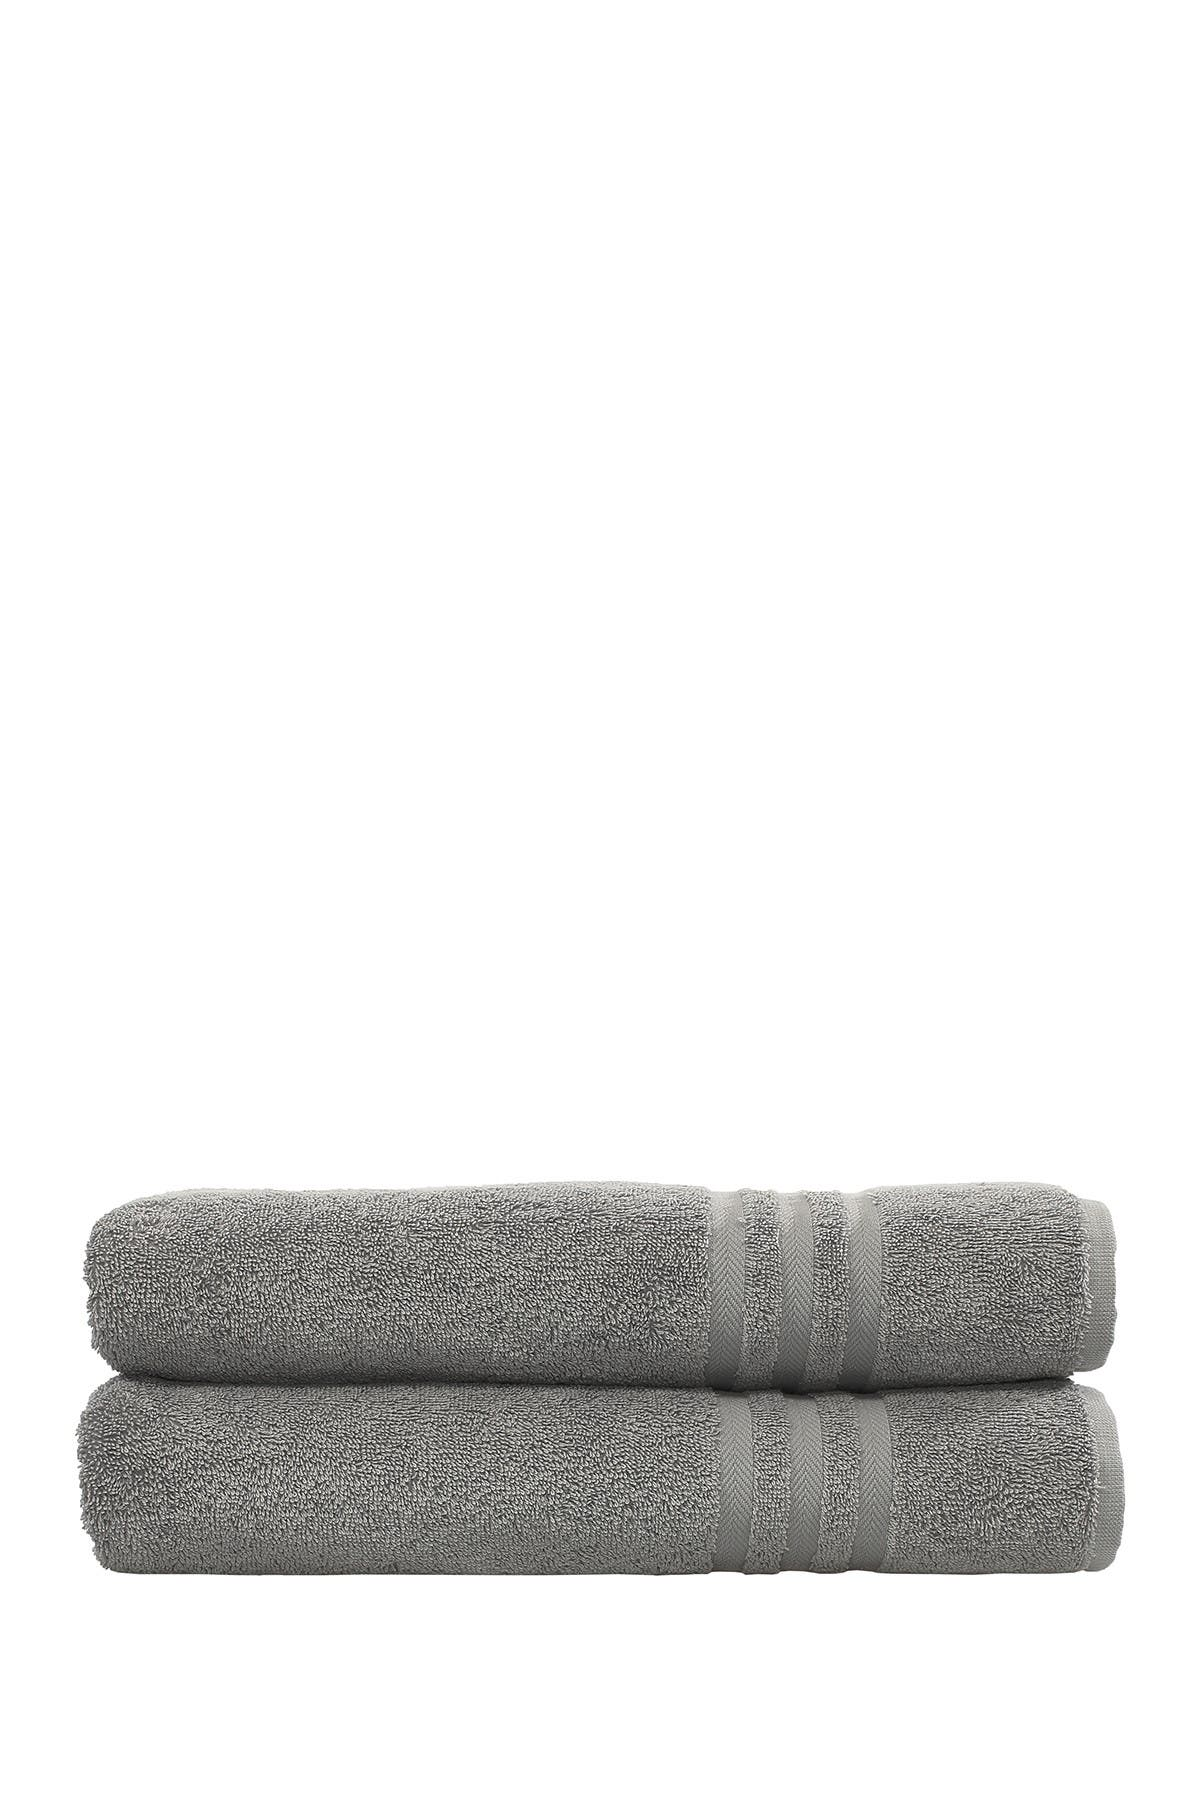 Image of LINUM HOME Denzi Bath Towels - Set of 2 - Dark Grey